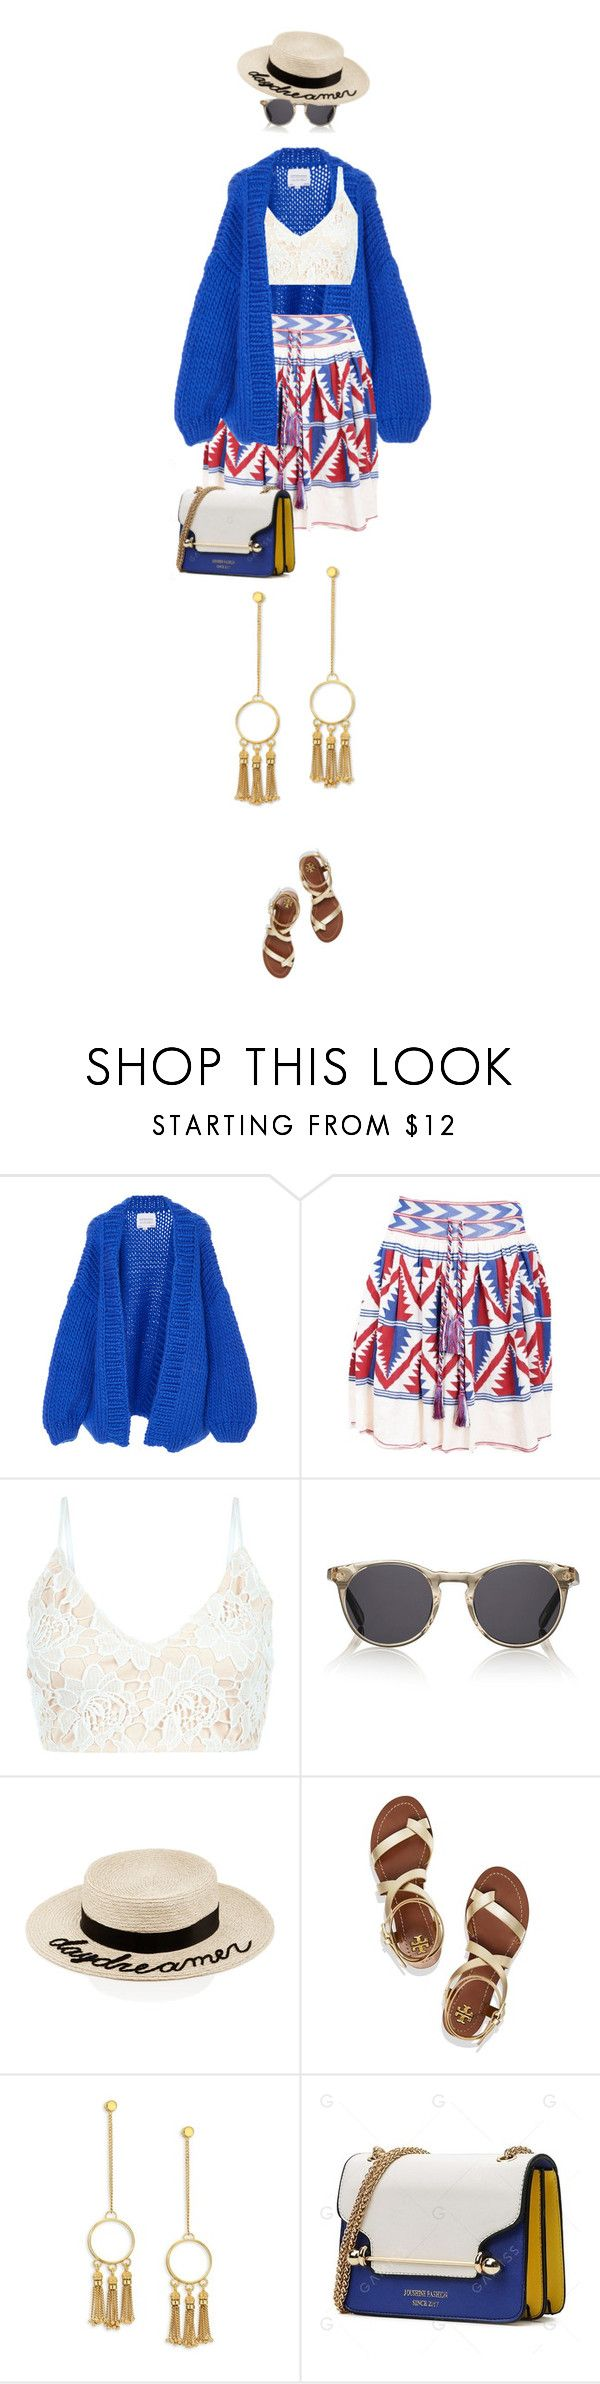 """""""eva 0920"""" by evava-c on Polyvore featuring I Love Mr. Mittens, Laneus, Finlay & Co., Eugenia Kim, Tory Burch and Chloé"""